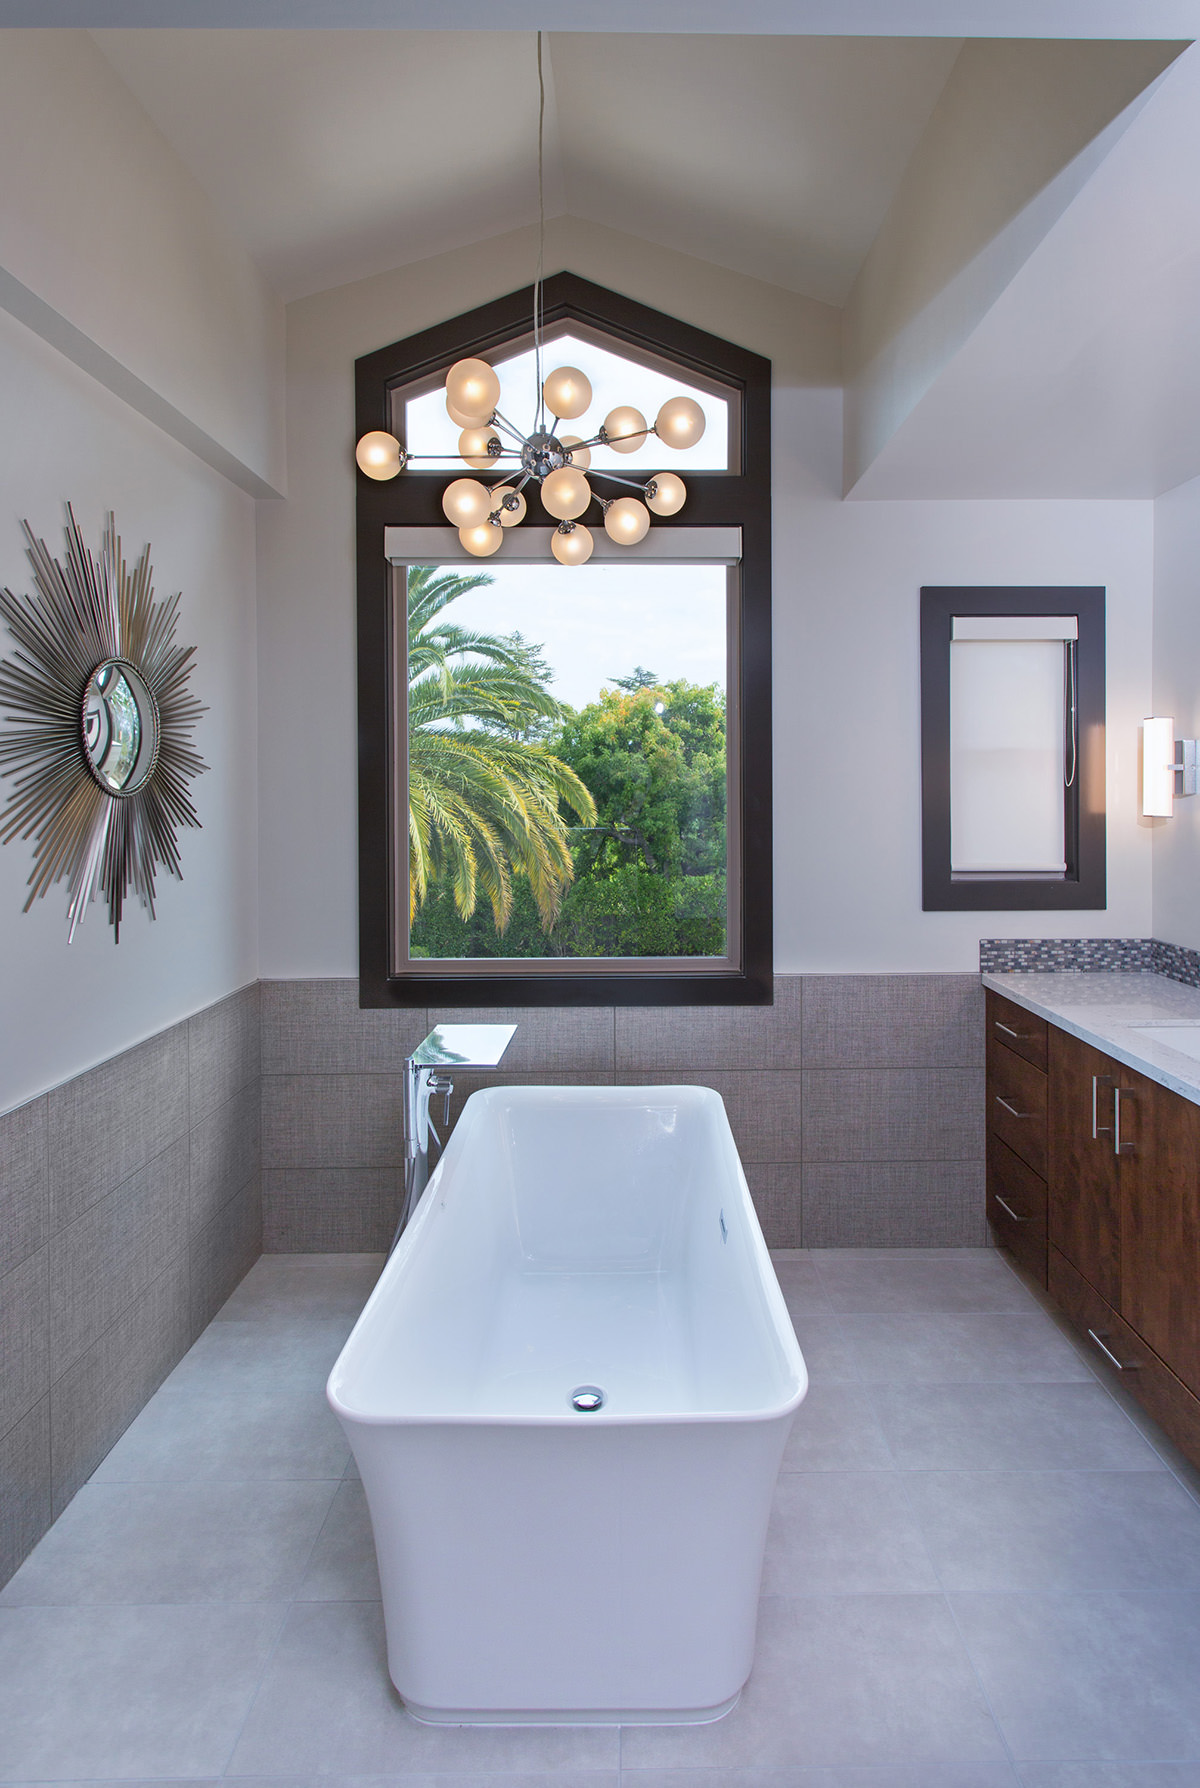 bathroom-interior-design-los-altos-california-ktj-design-co-13.jpg